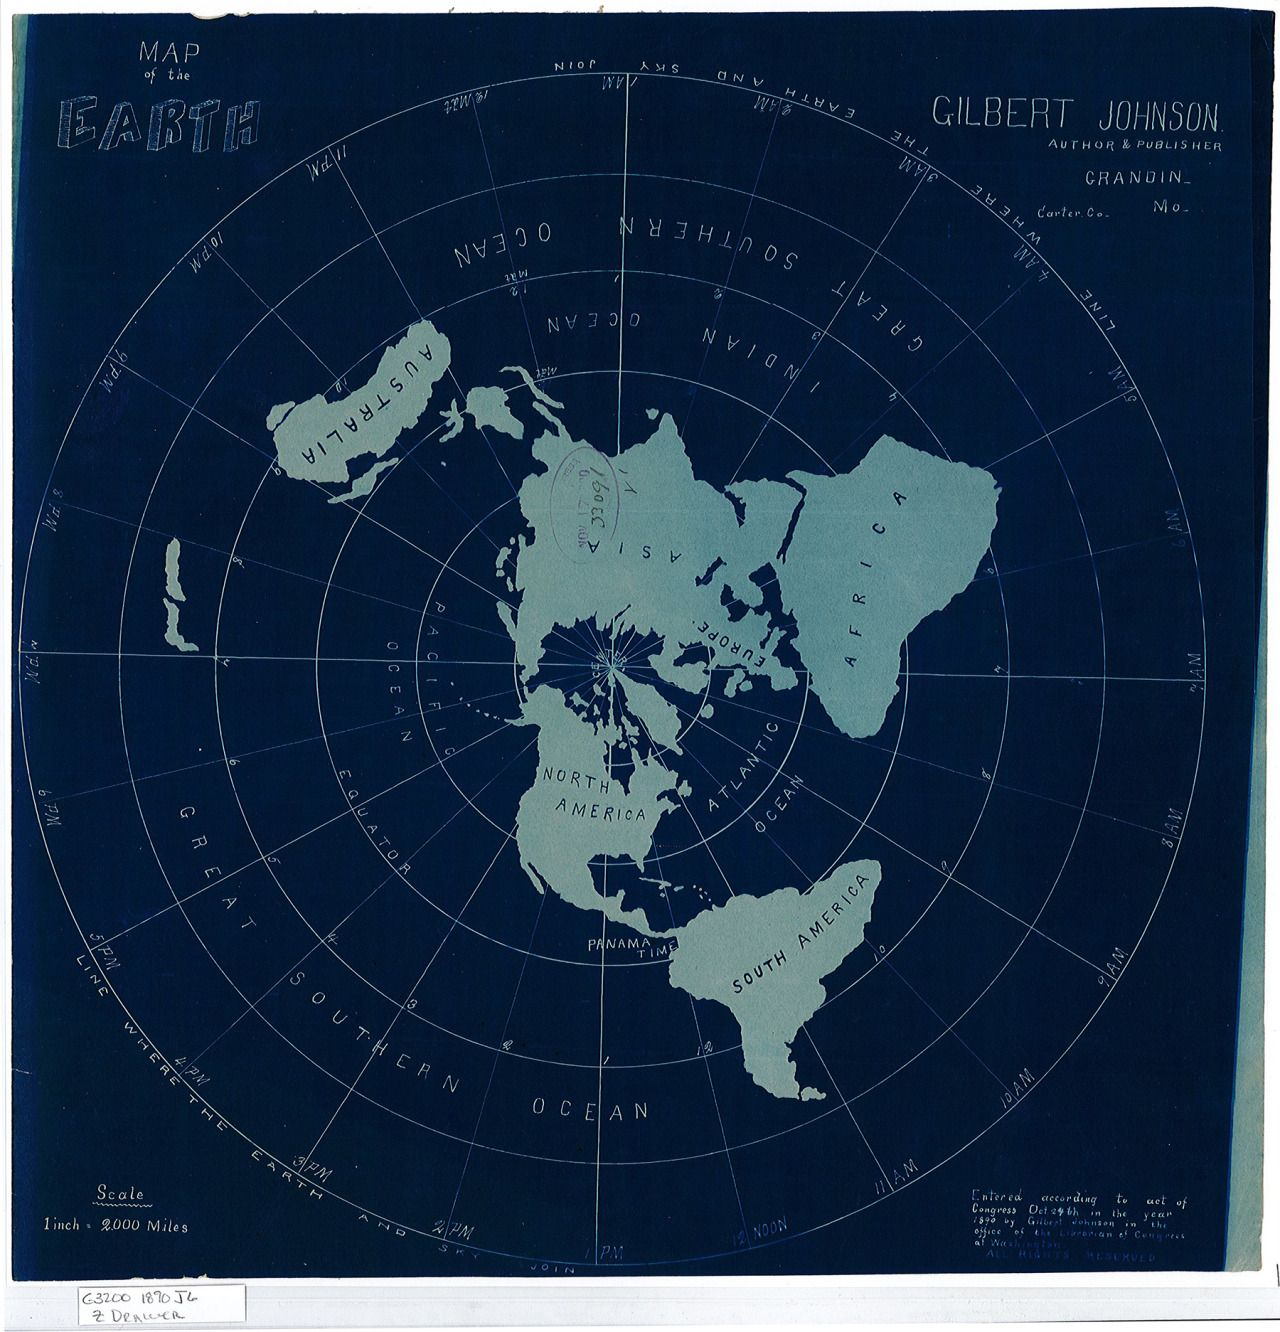 Flat Earth map created by Gilbert Johnson in 1890 # ...